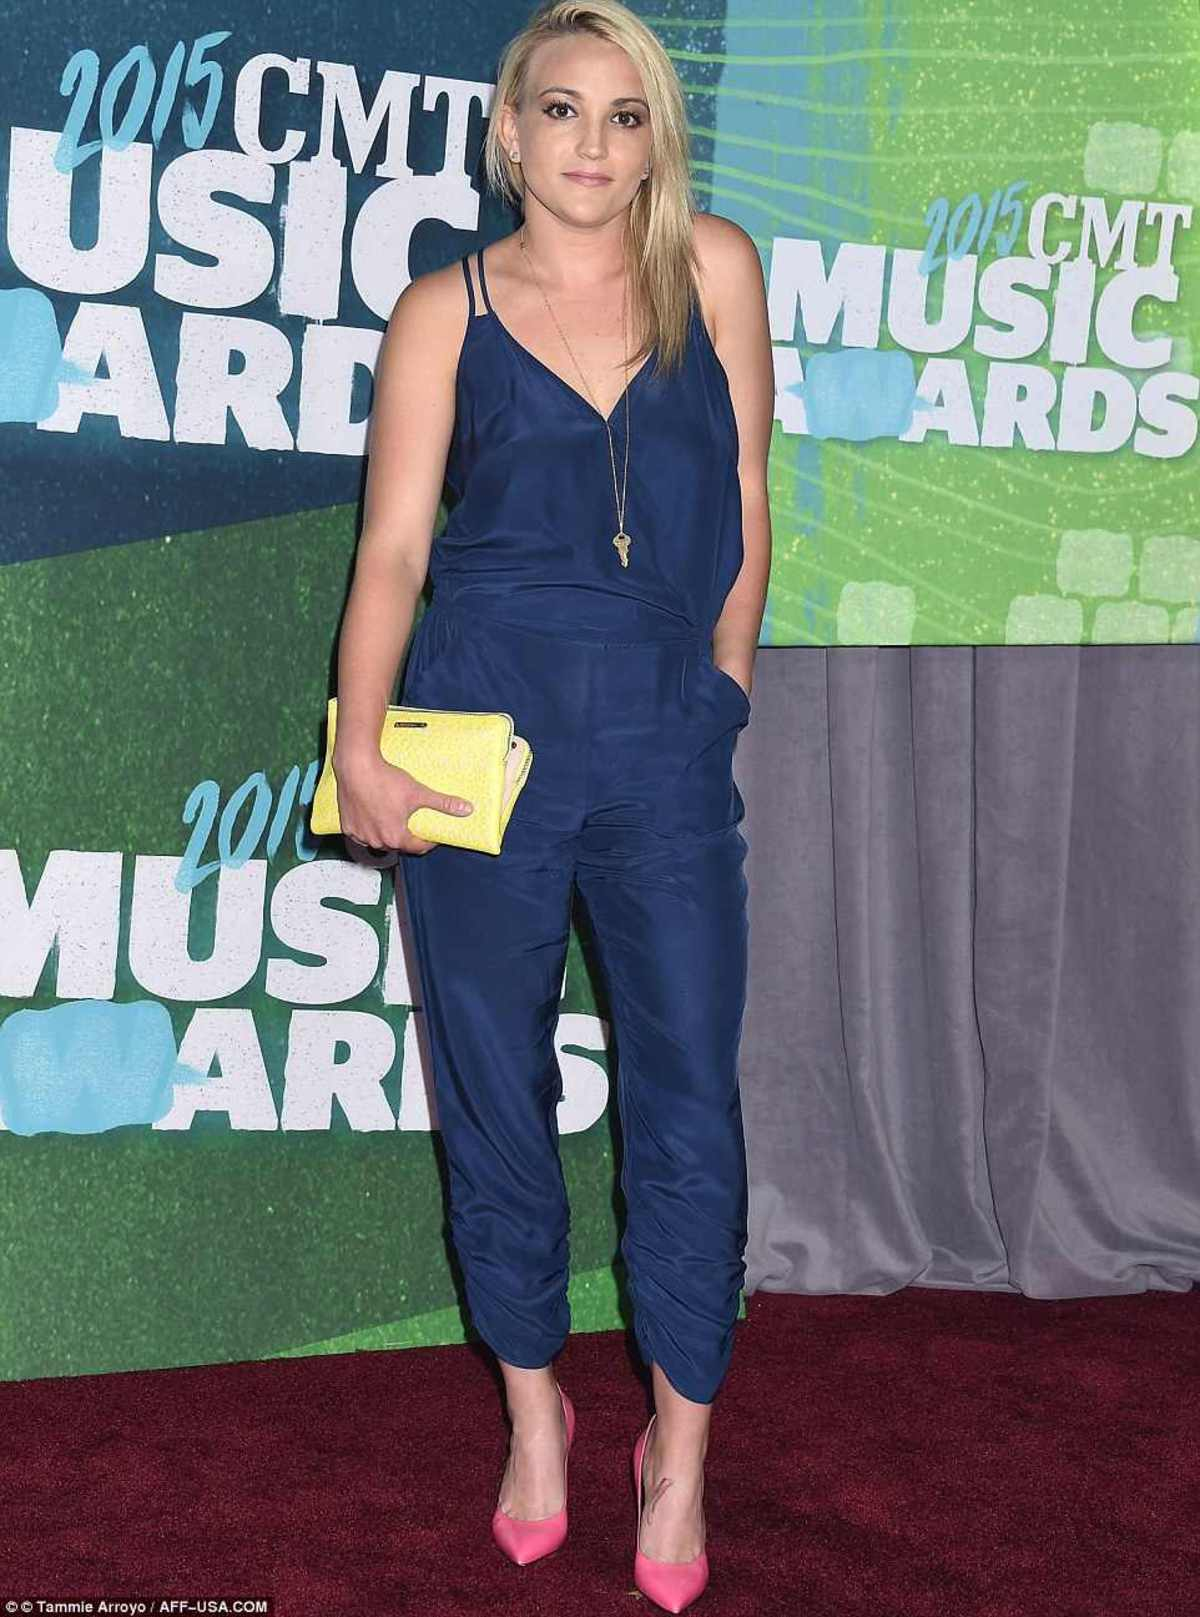 2984EB9400000578-0-Blonde_ambition_Britney_Spears_younger_sister_Jaime_Lynn_Spears_-a-88_1433984344038